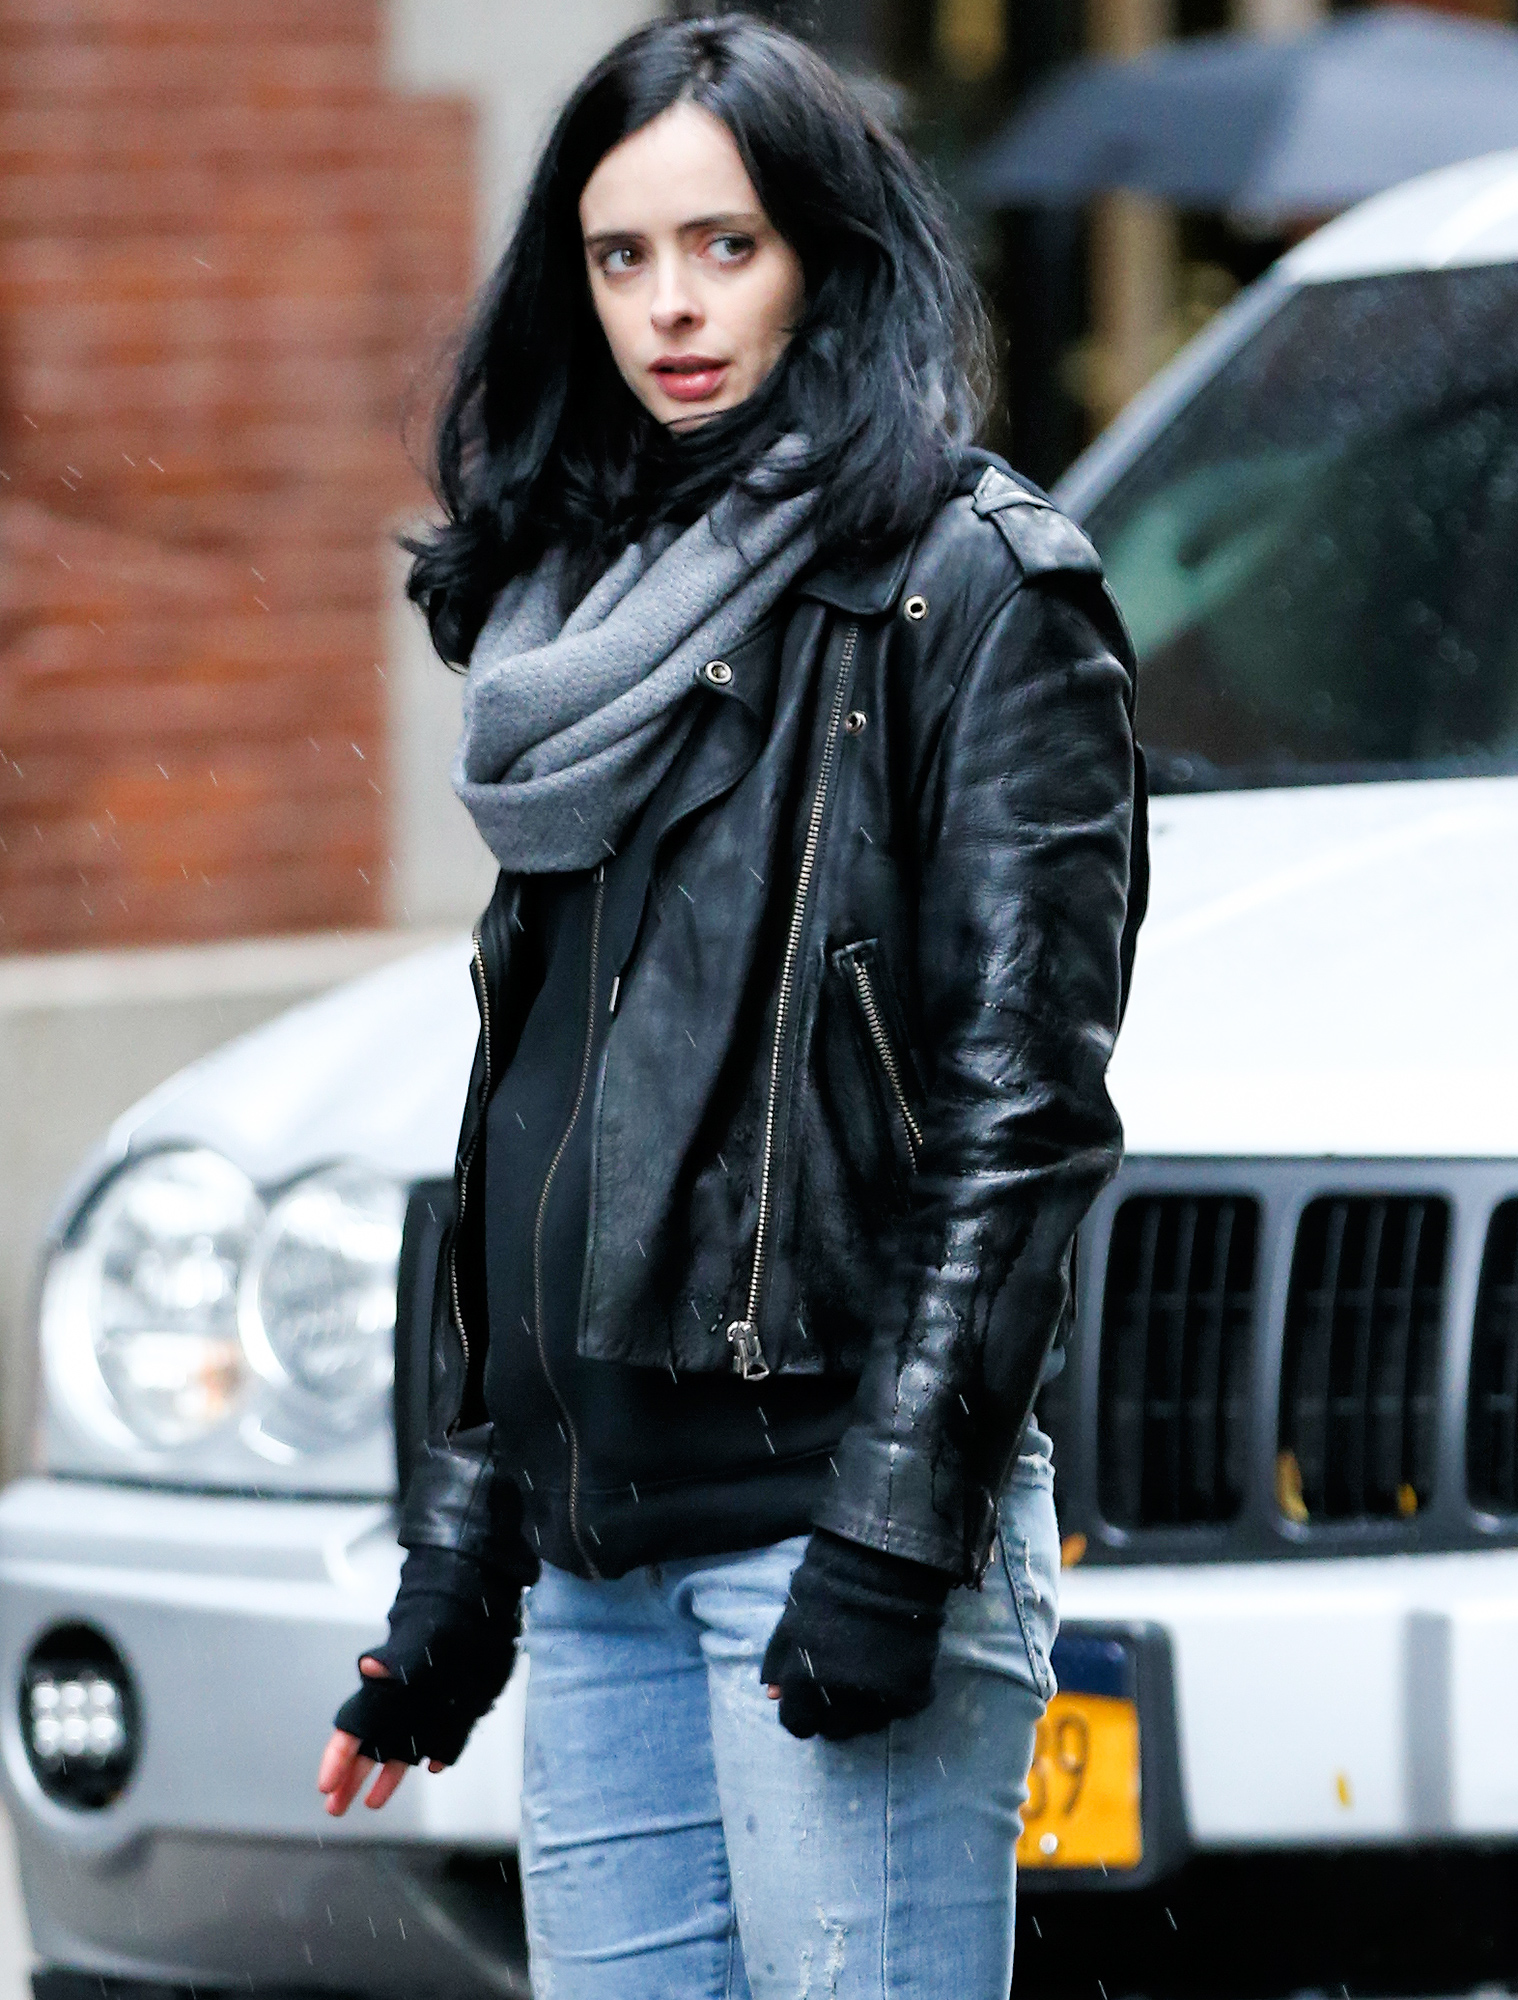 Australian actress Rachael Taylor and Krysten Ritter film 'The Defenders' on Crosy Street in Soho in New York City